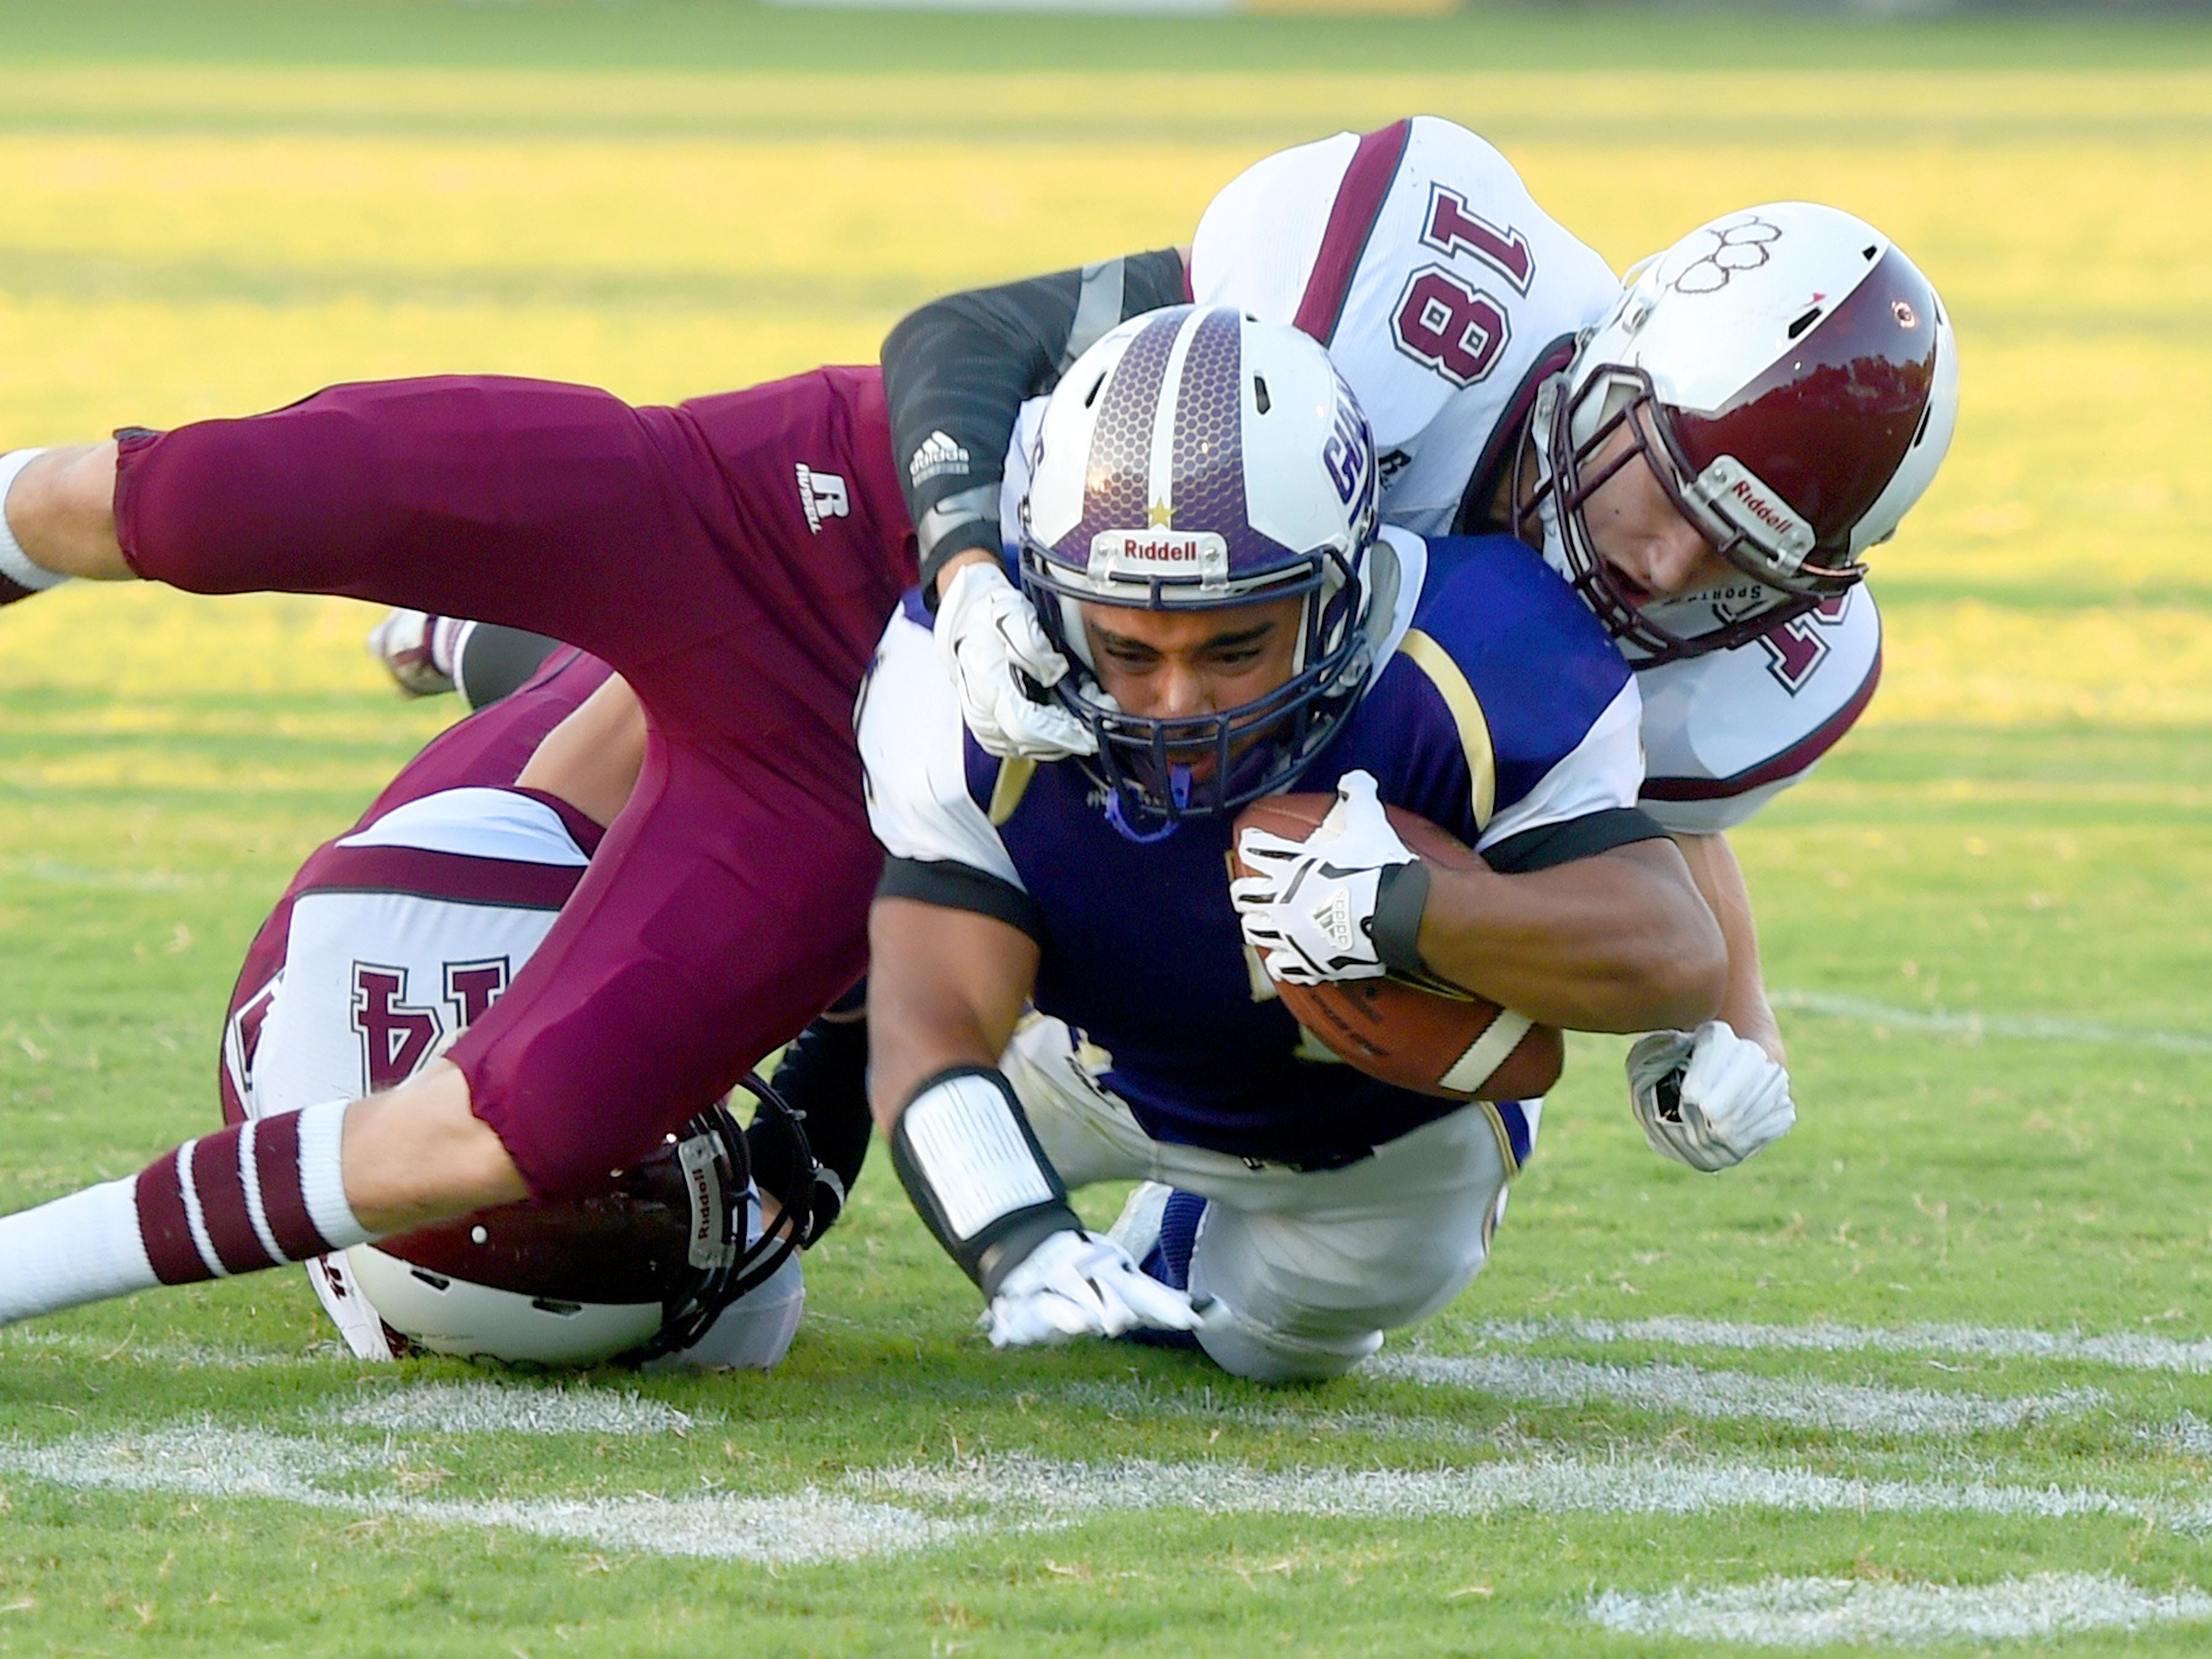 Waynesboro's Marendon Armon Jones is wrapped up by Stuarts Draft's Colton Stiltner and Trevor Craig who rbring him down during a football game played in Waynesboro on Friday, Sept. 11, 2015.